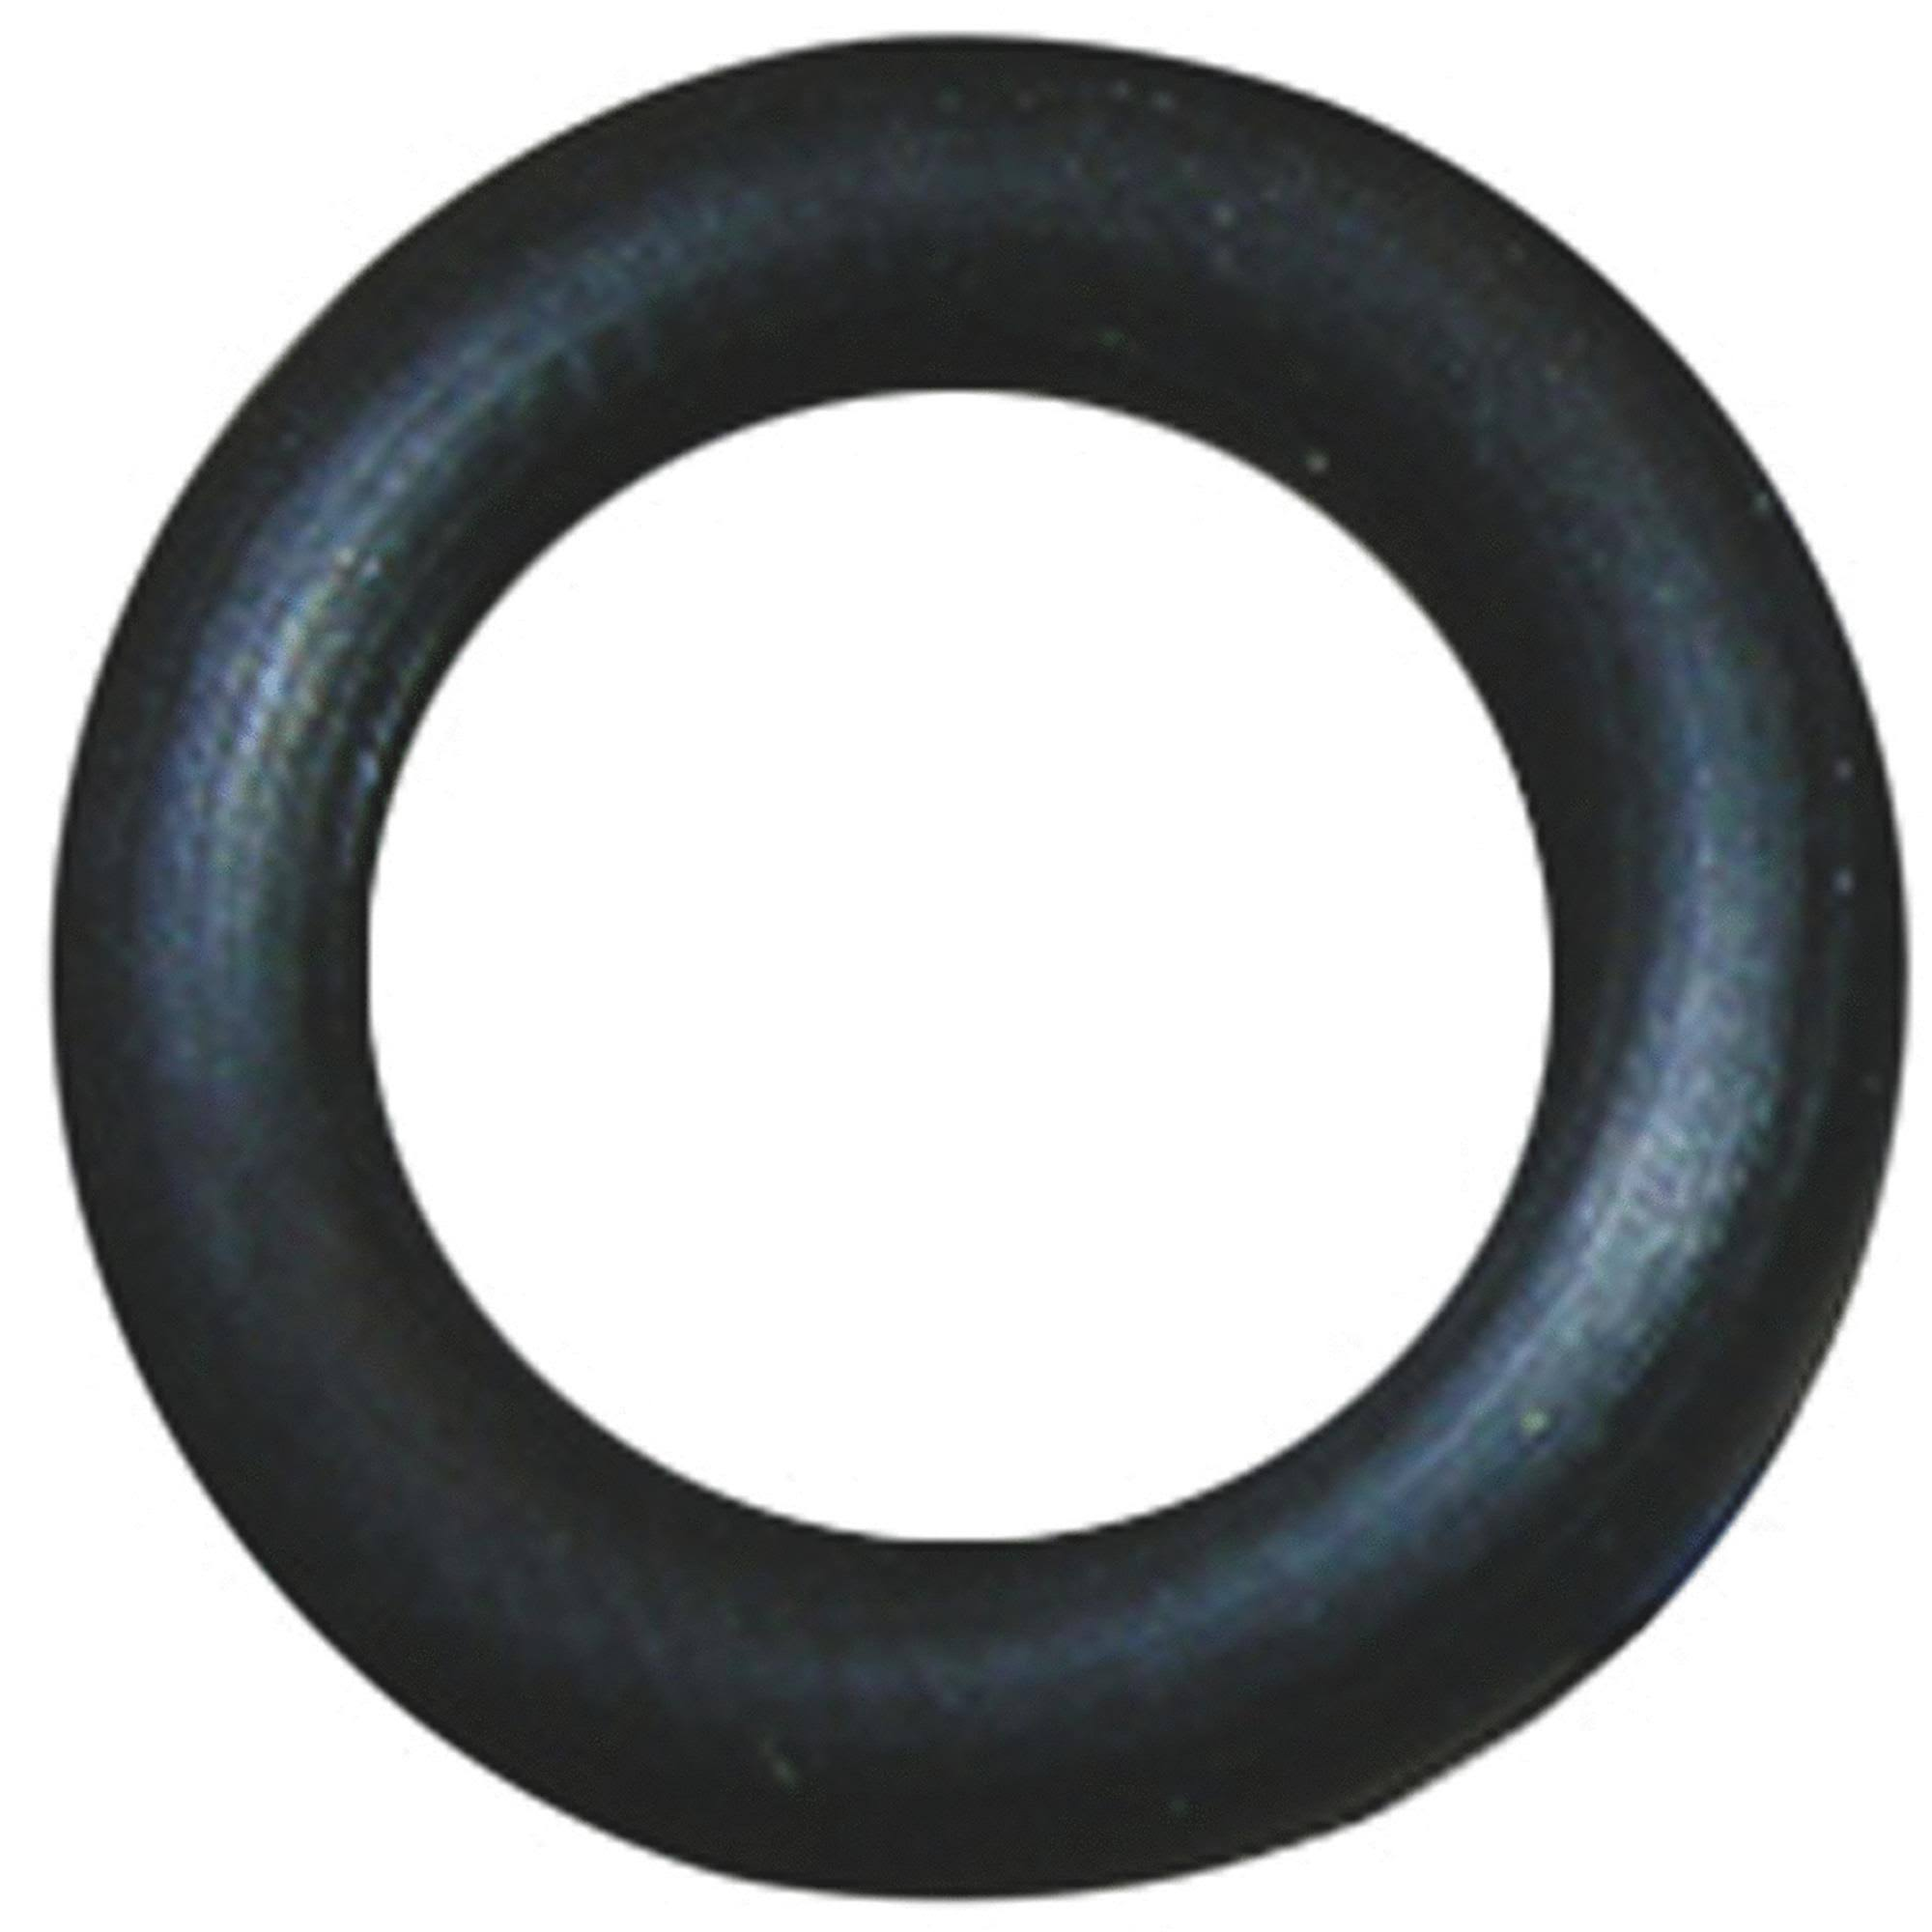 "Larsen Supply 02-1510P O-Ring - Pack of 10, 3/4"" x 1"" x 1/8"", #42"